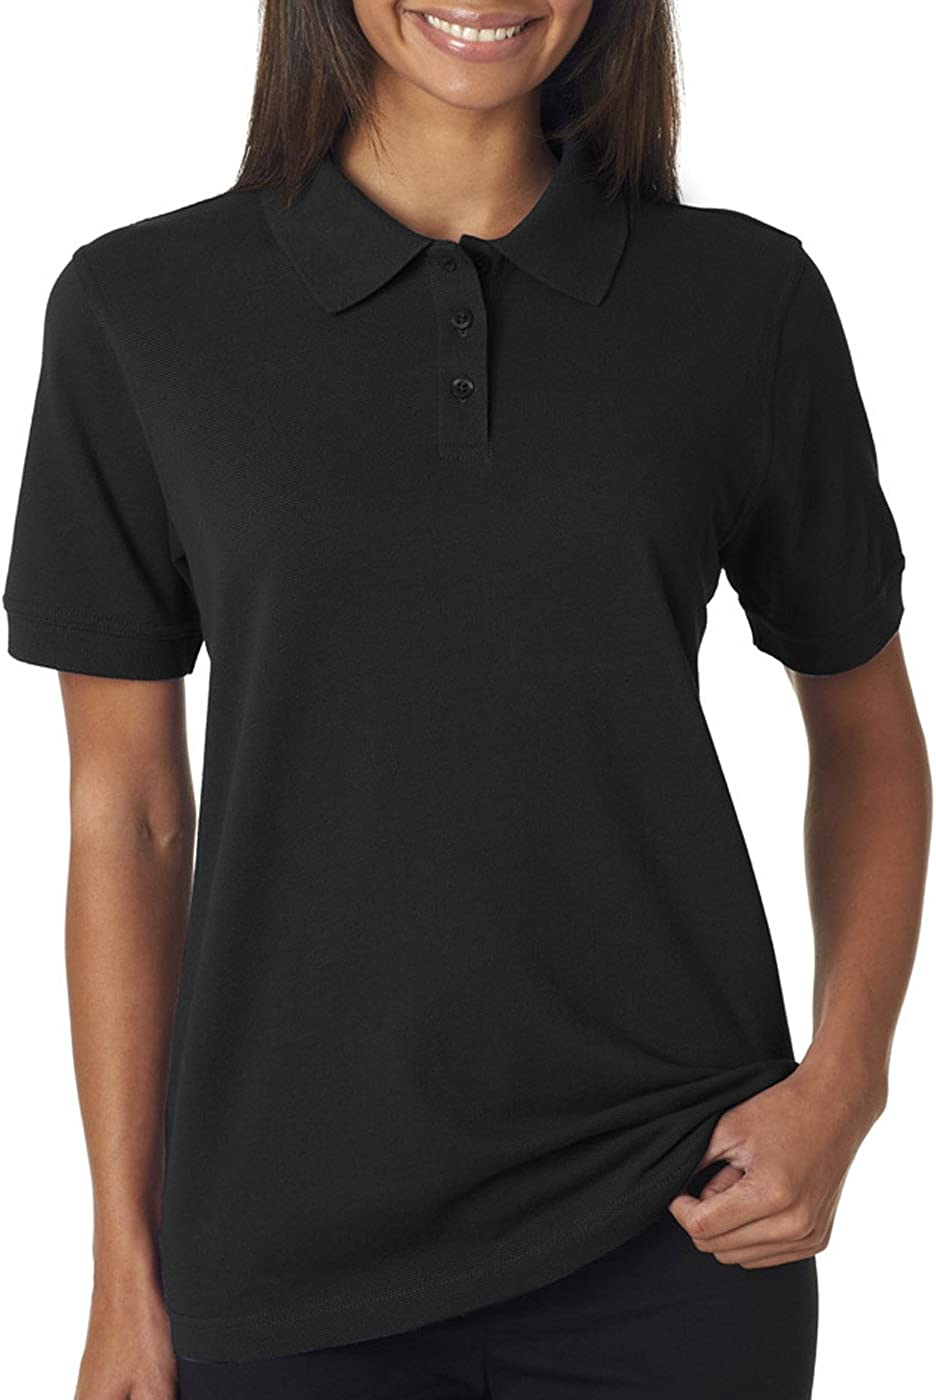 UltraClubs Women's Classic Pique Polo, Black, 3X-Large